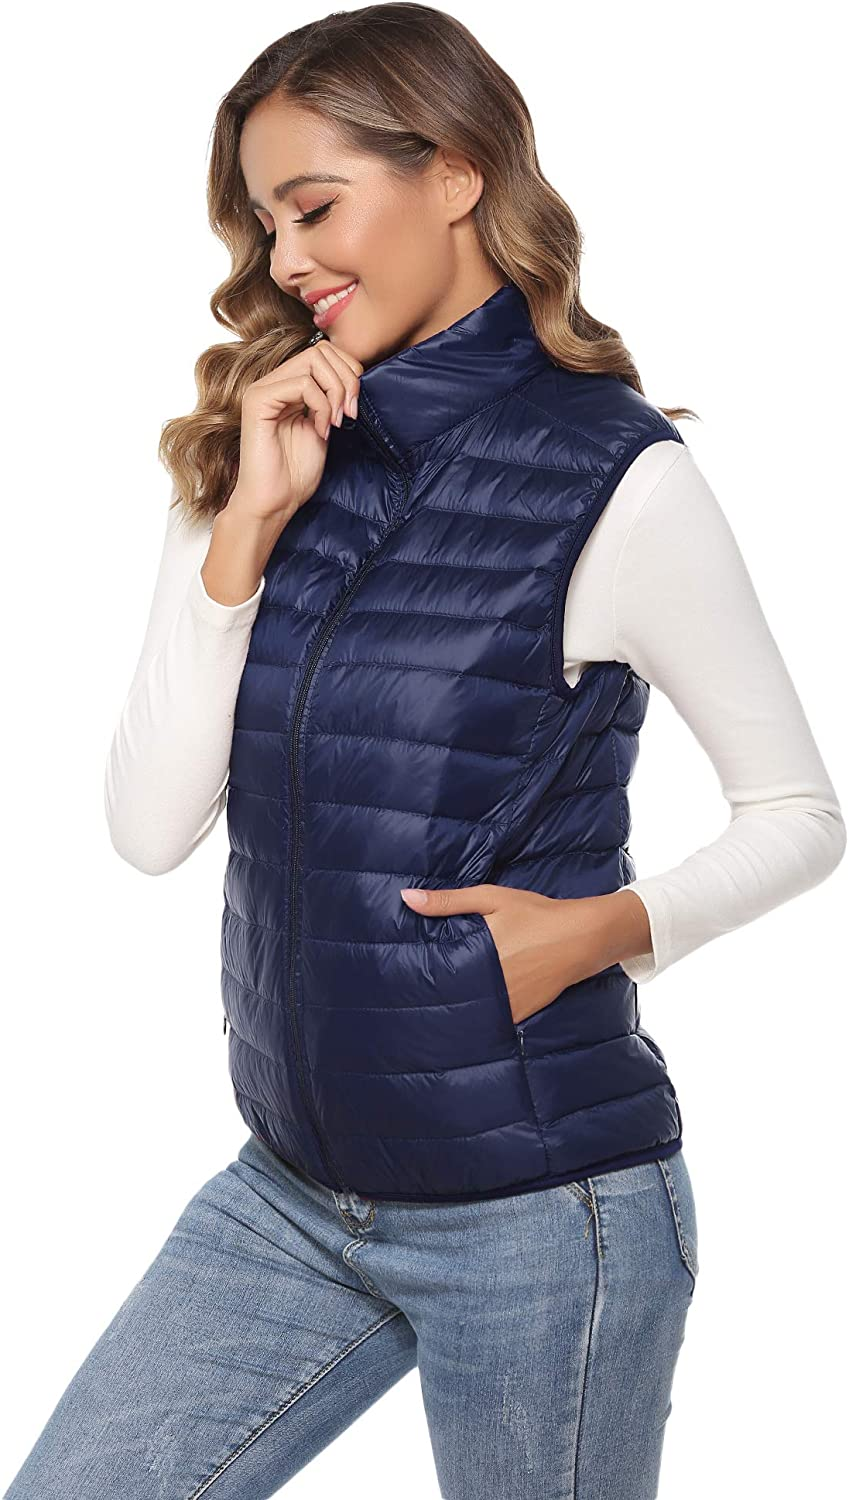 Hawiton Womens Lightweight Down Packable Vests Alternative Outerwear Zipper Vest Jacket